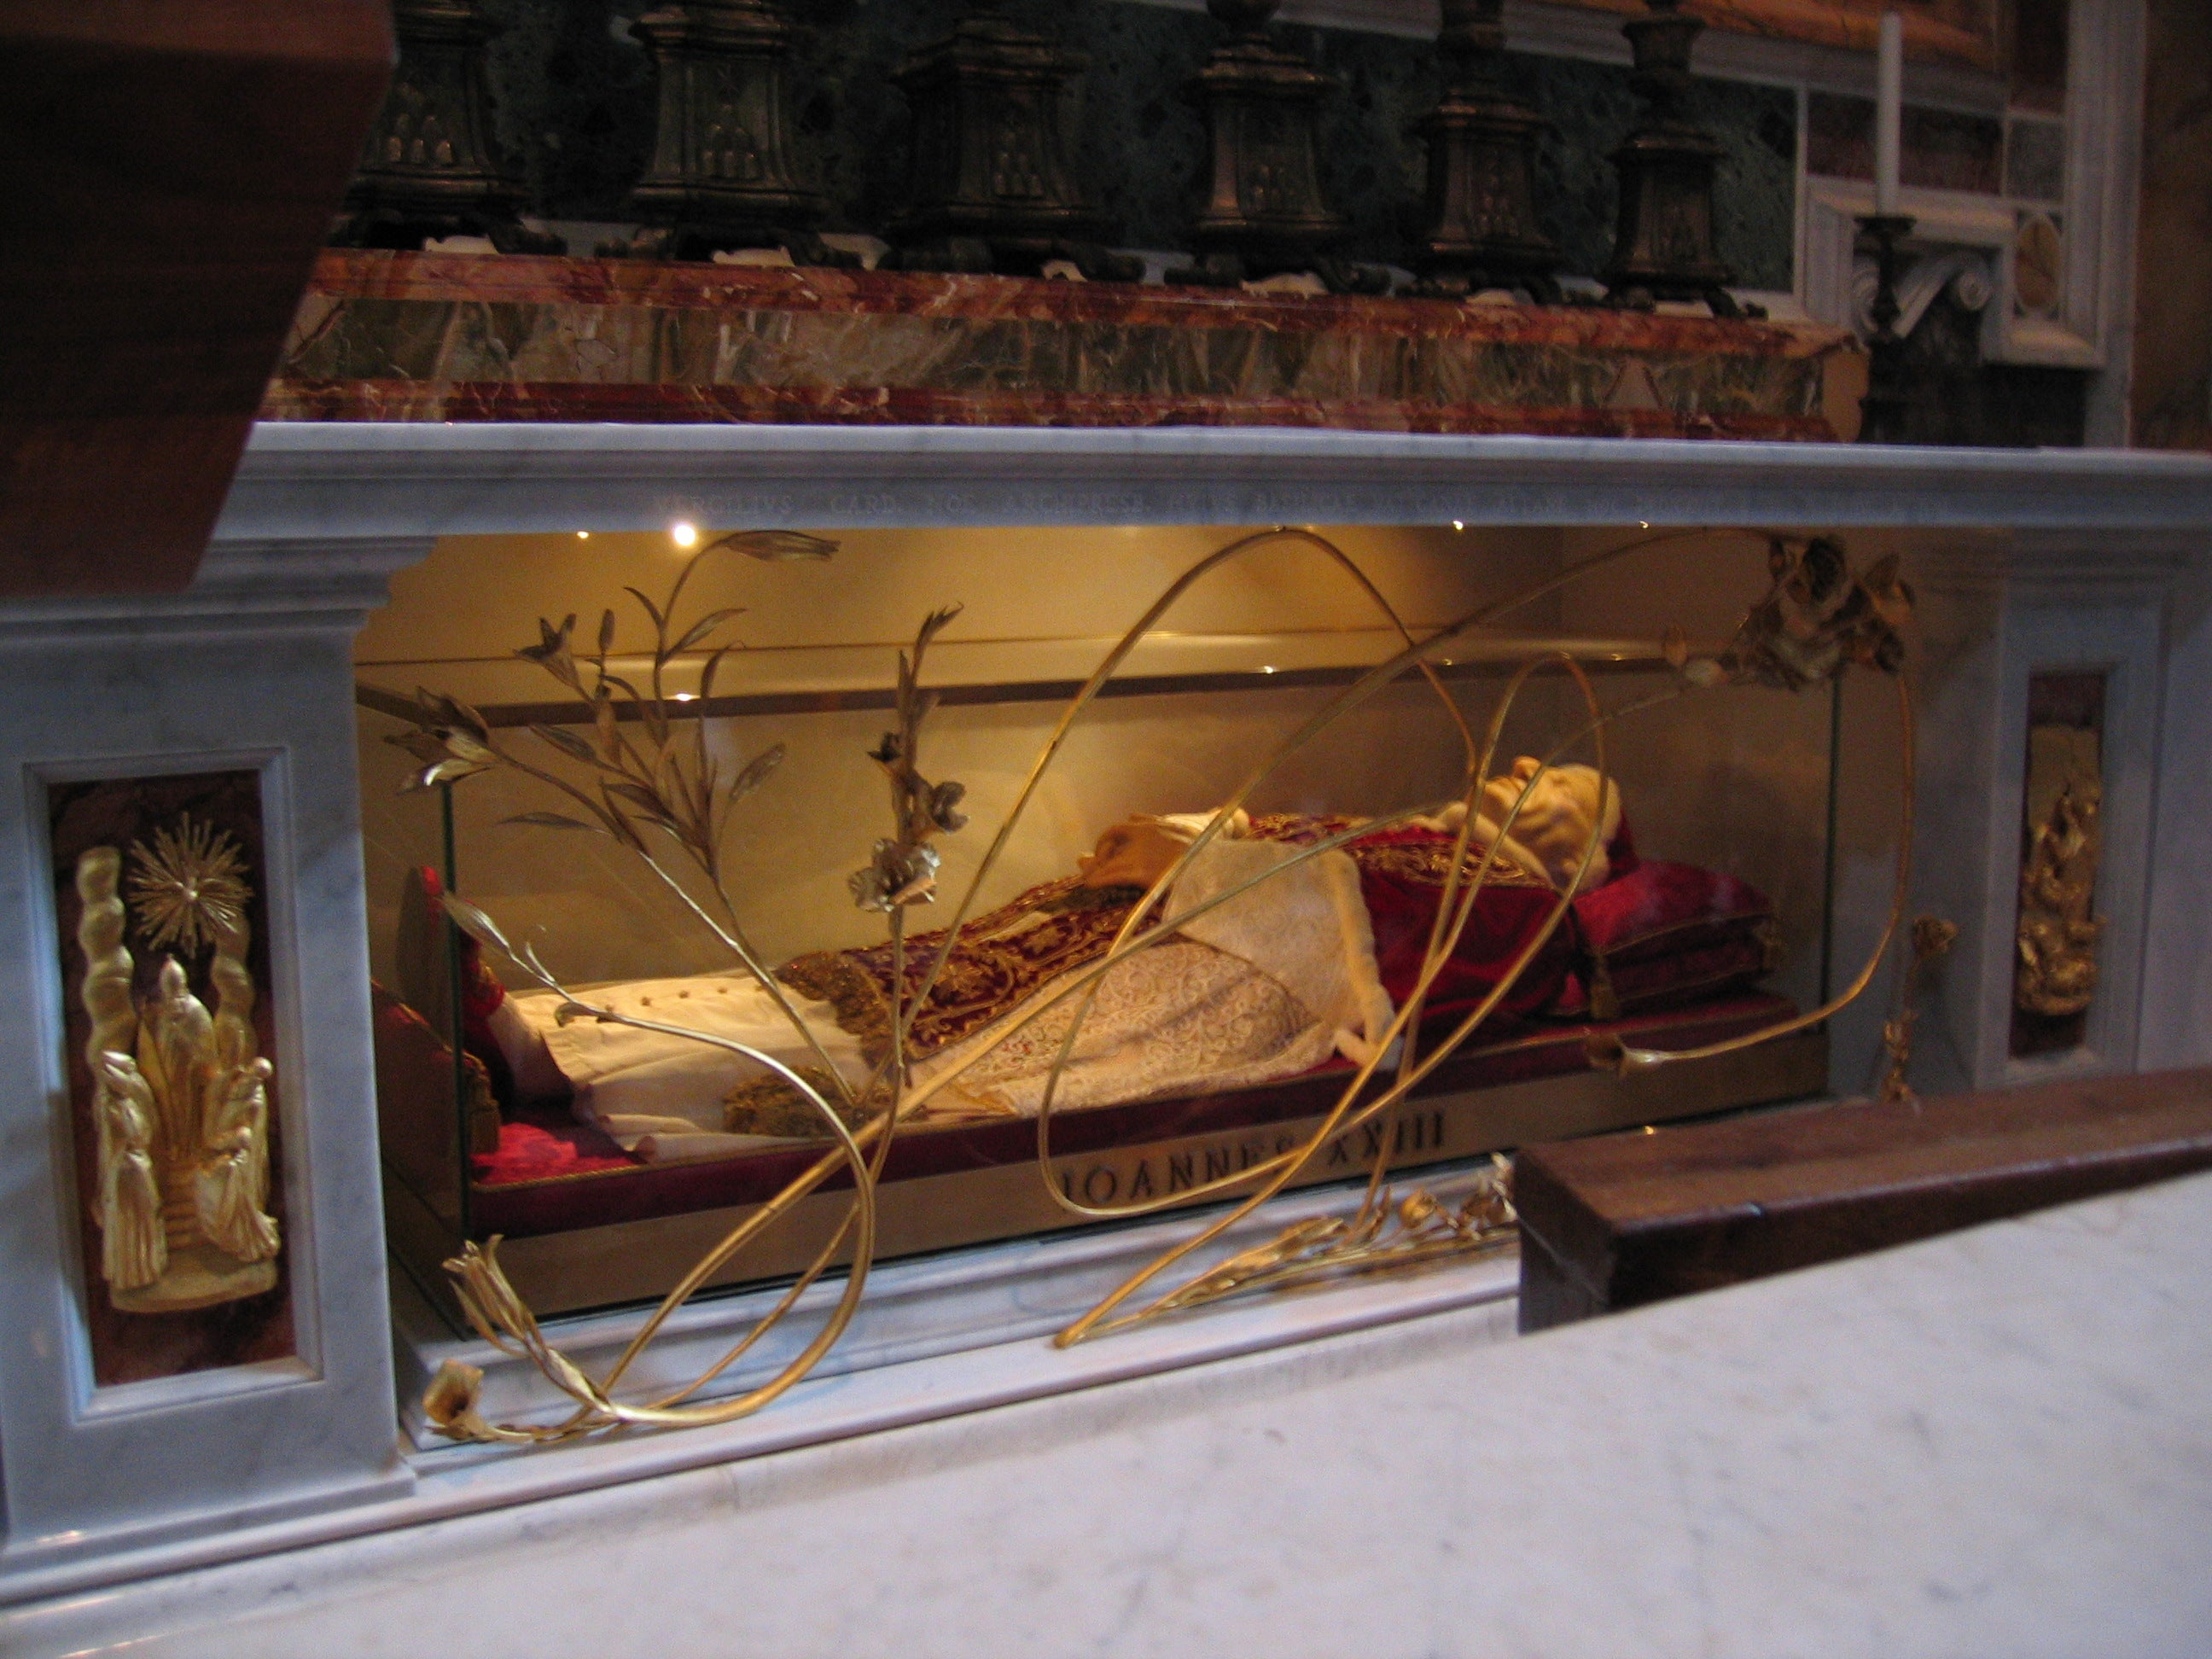 Remains of John XXIII in St. Peter's Basilica